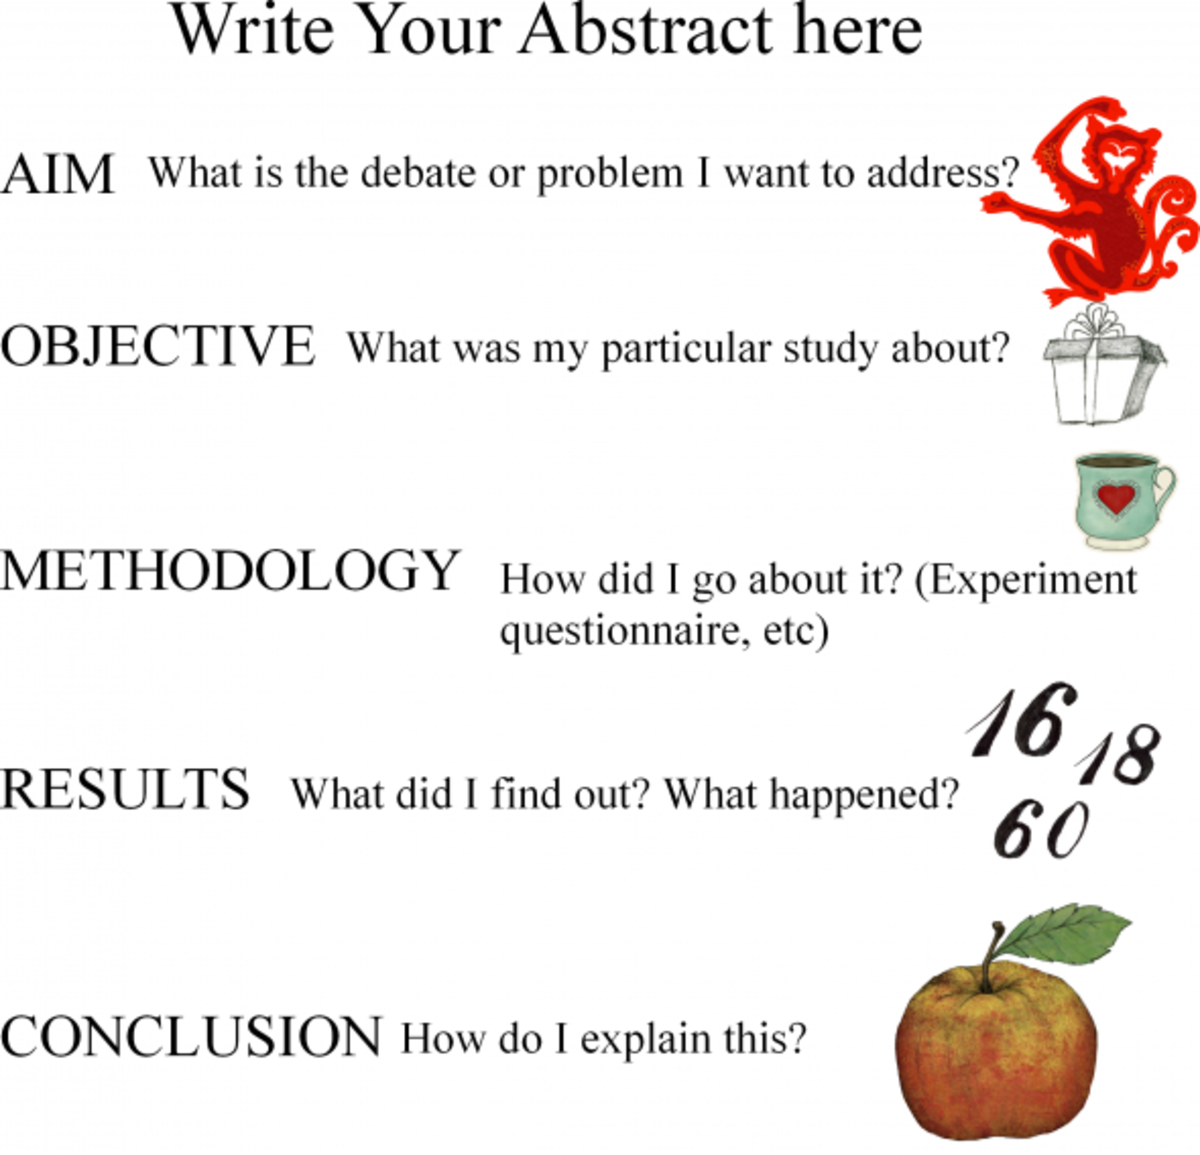 Worksheet for writing an abstract